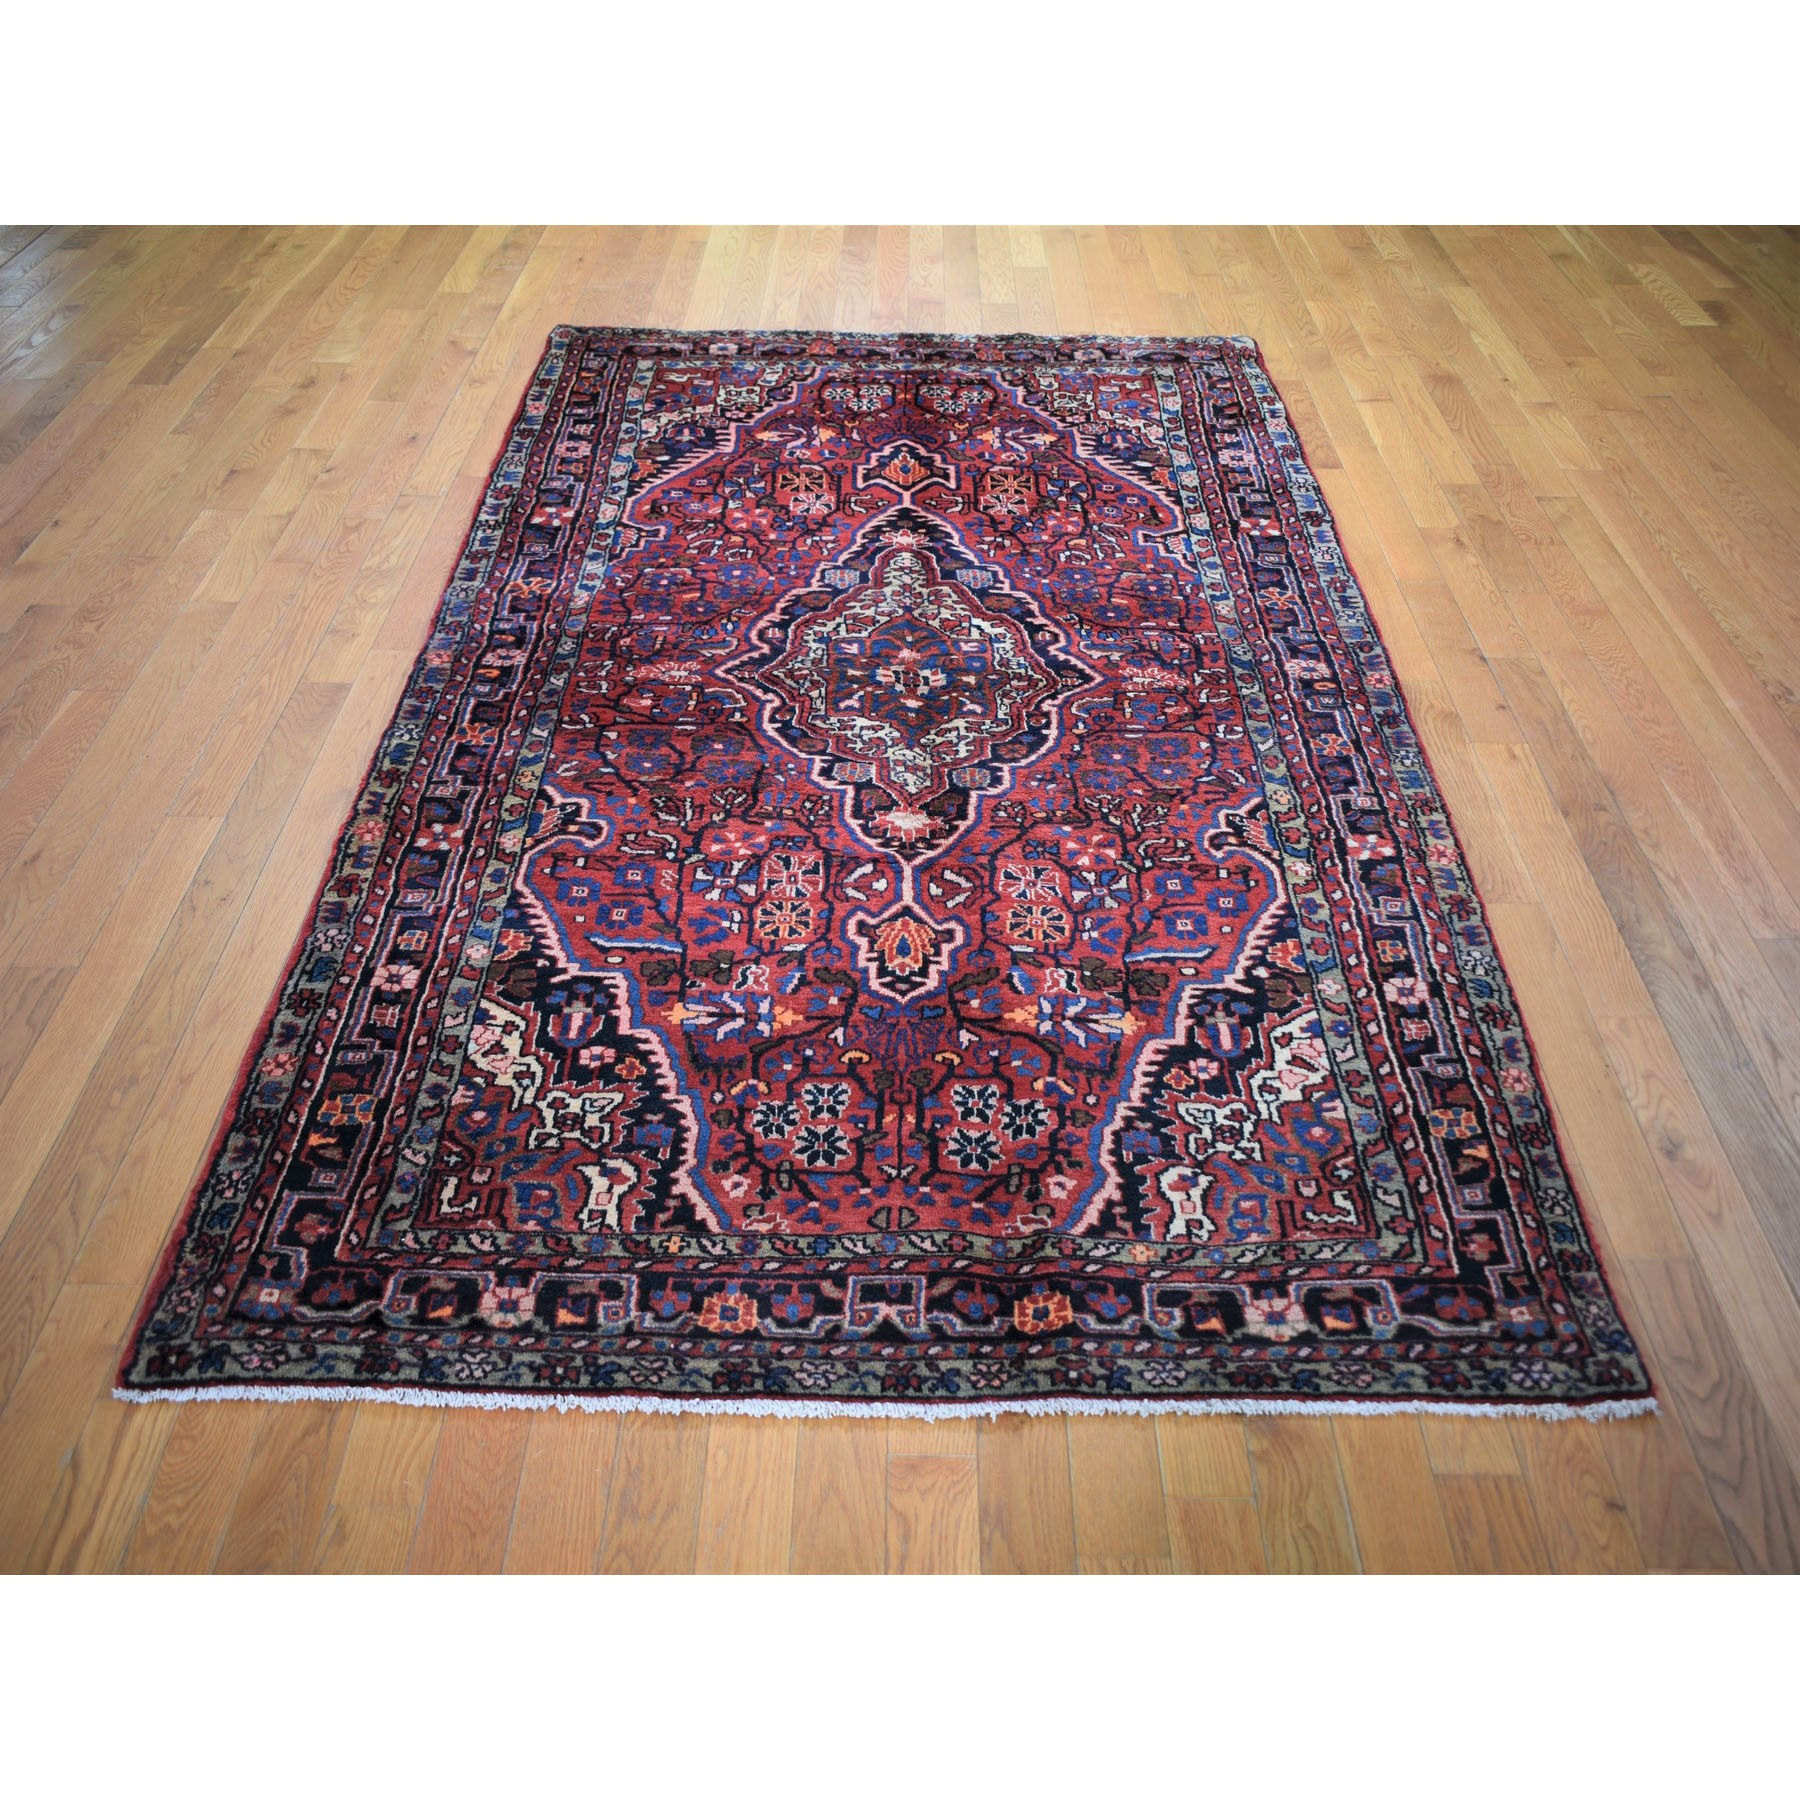 "5'x8'10"" Red Vintage North West Persian Pure Wool Hand Woven Oriental Rug"